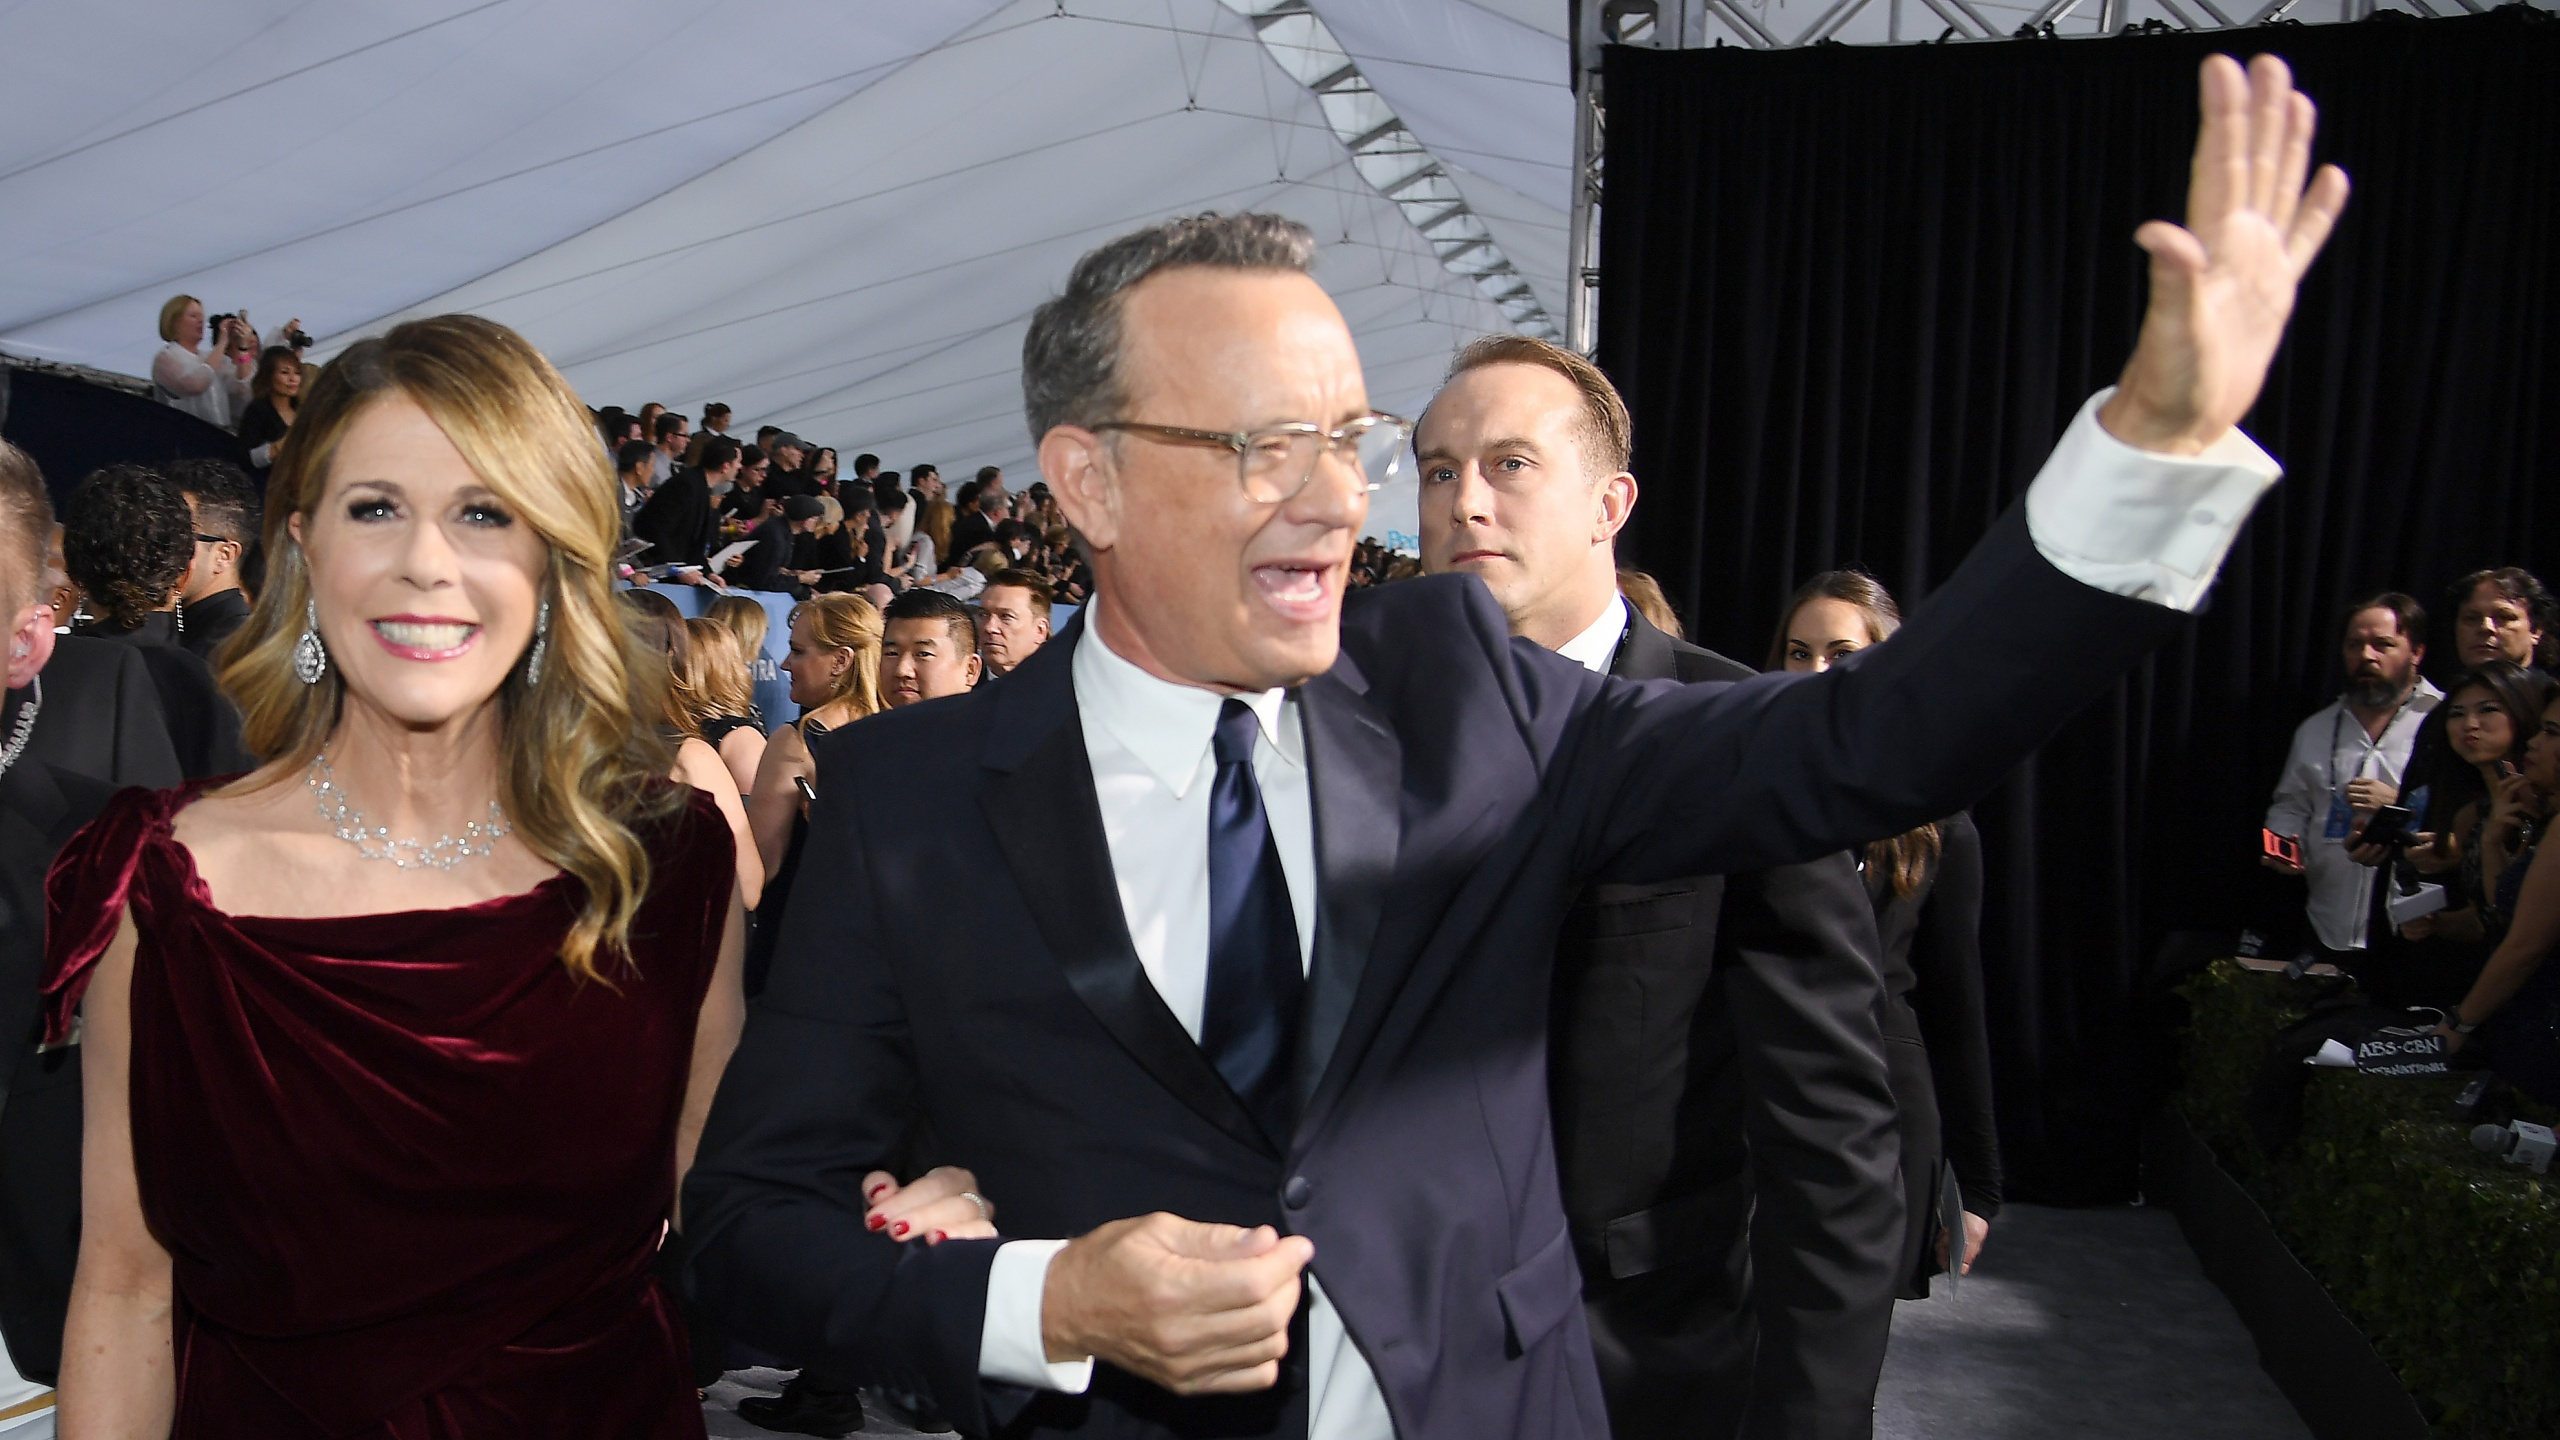 LOS ANGELES, CALIFORNIA - JANUARY 19: (L-R) Rita Wilson and Tom Hanks attend the 26th Annual Screen ActorsGuild Awards at The Shrine Auditorium on January 19, 2020 in Los Angeles, California. 721407 (Photo by Dimitrios Kambouris/Getty Images for Turner)